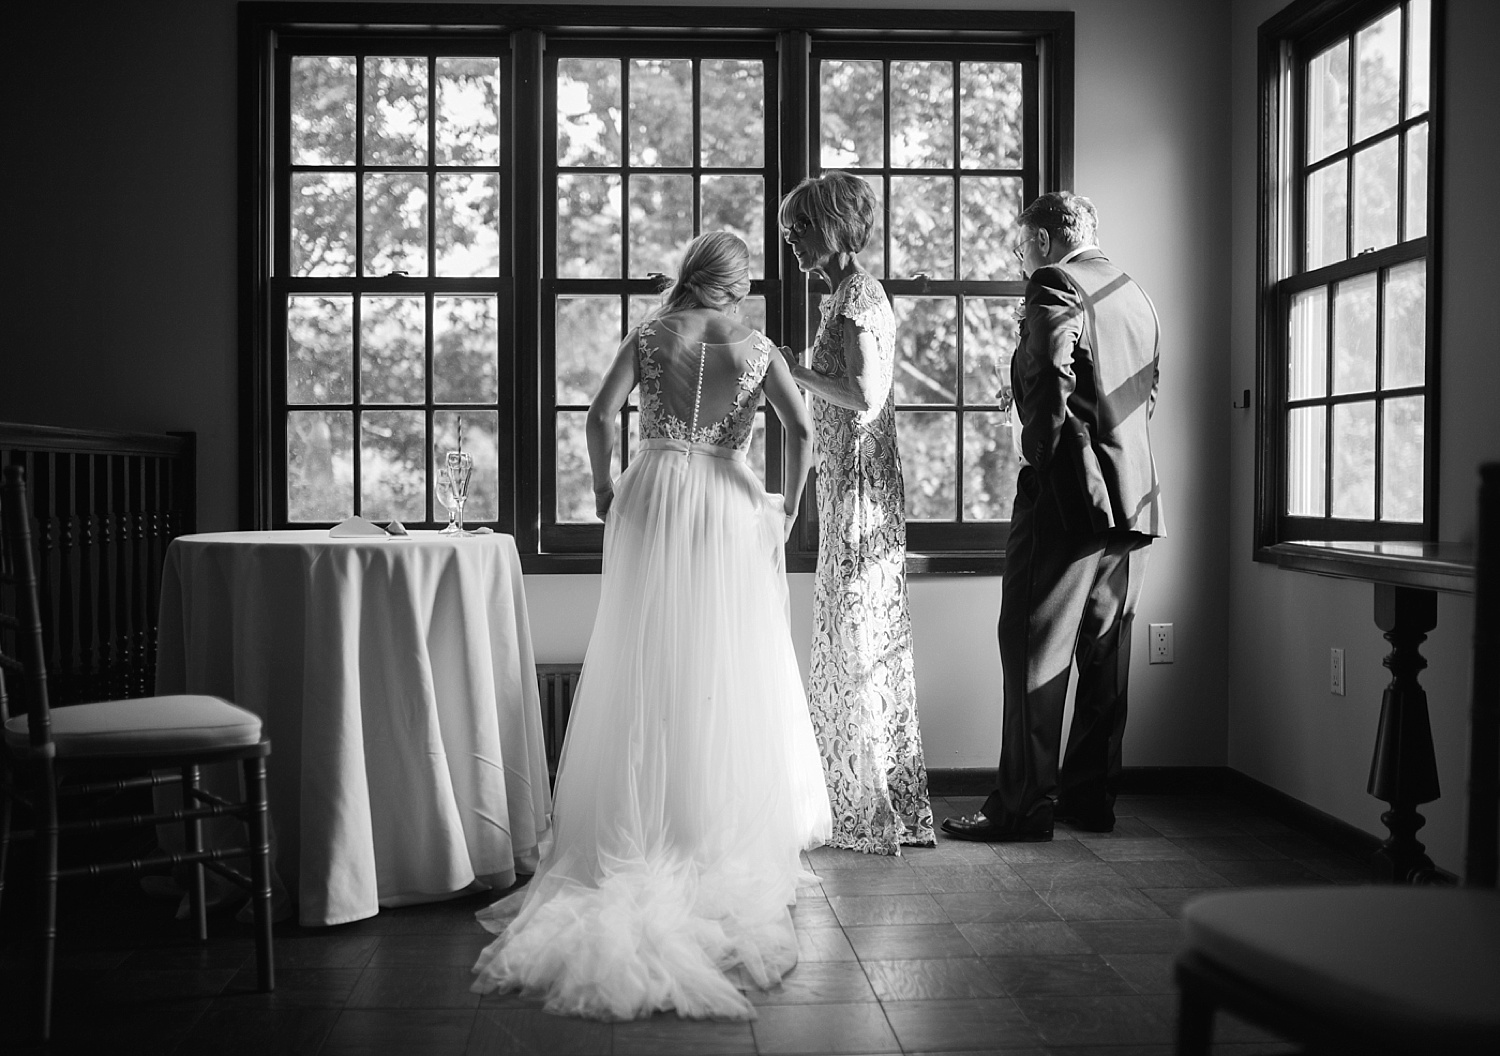 romantic_hotelduvillage_newhope_pennsylvania_wedding_040.jpg